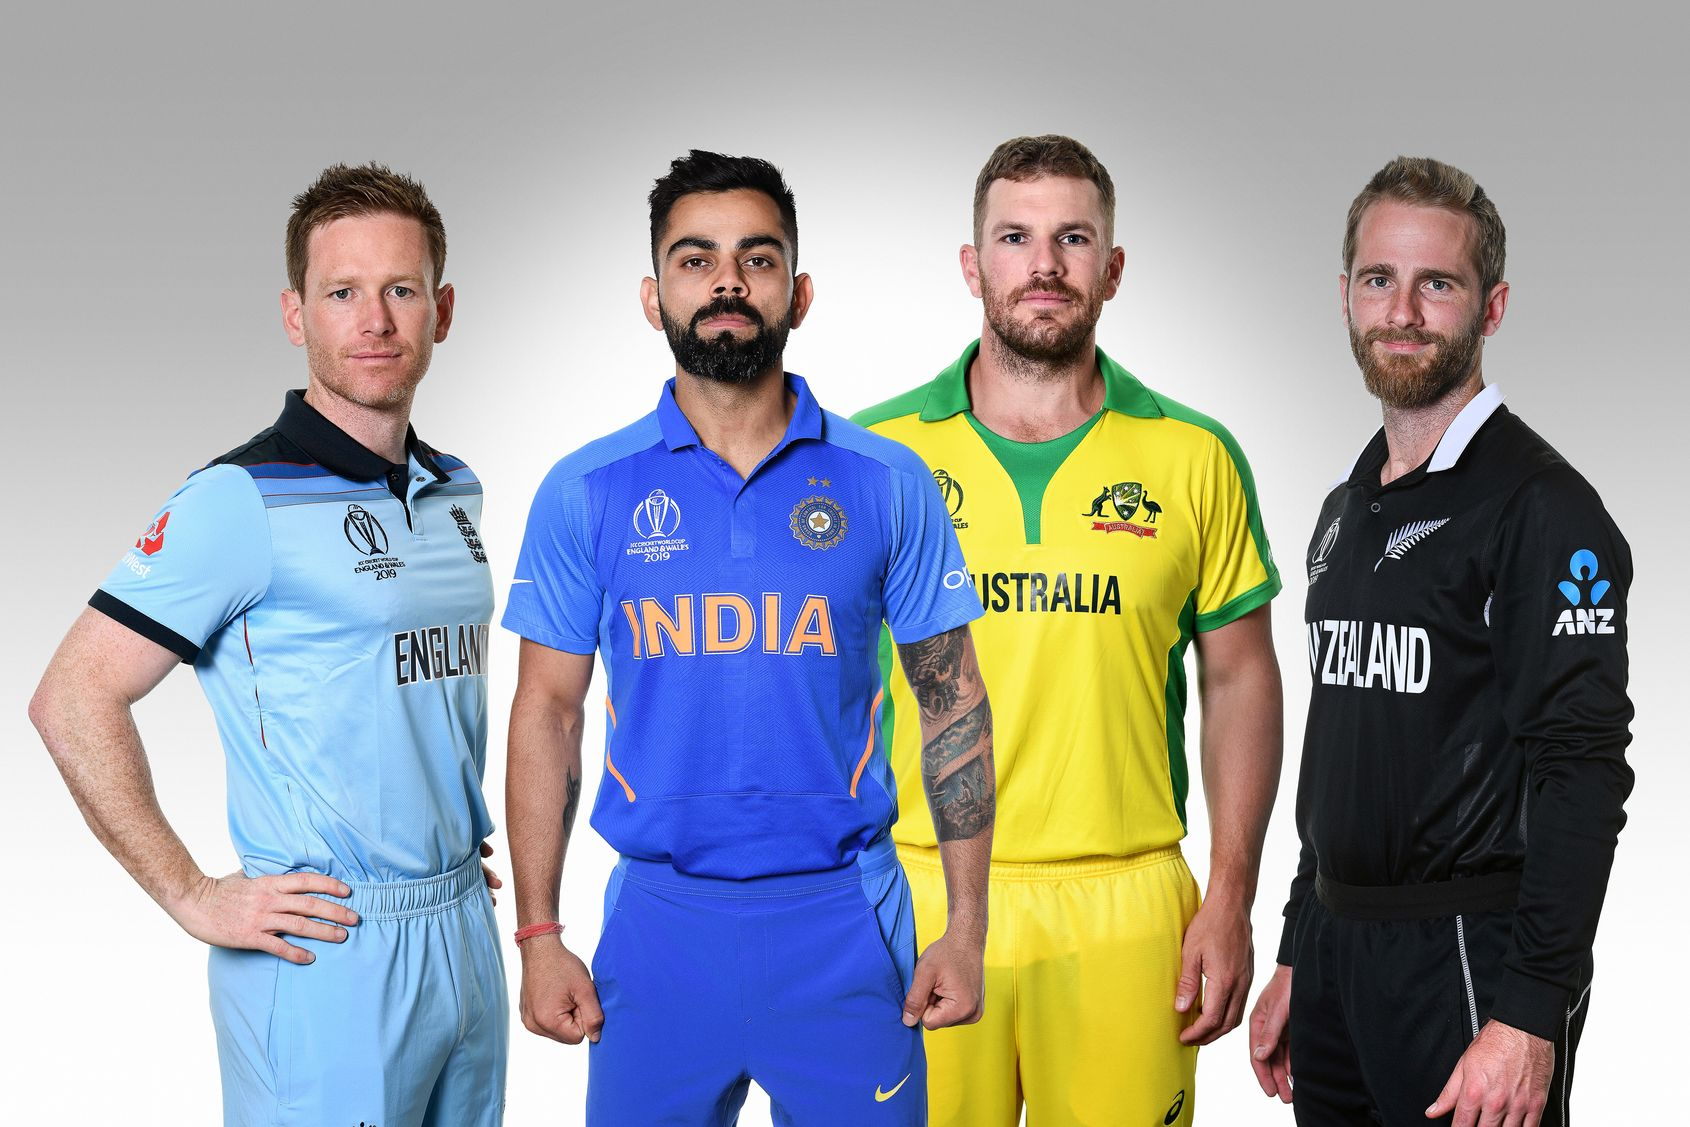 U19 cricket world cup 2021 betting trends norway v iceland betting preview nfl